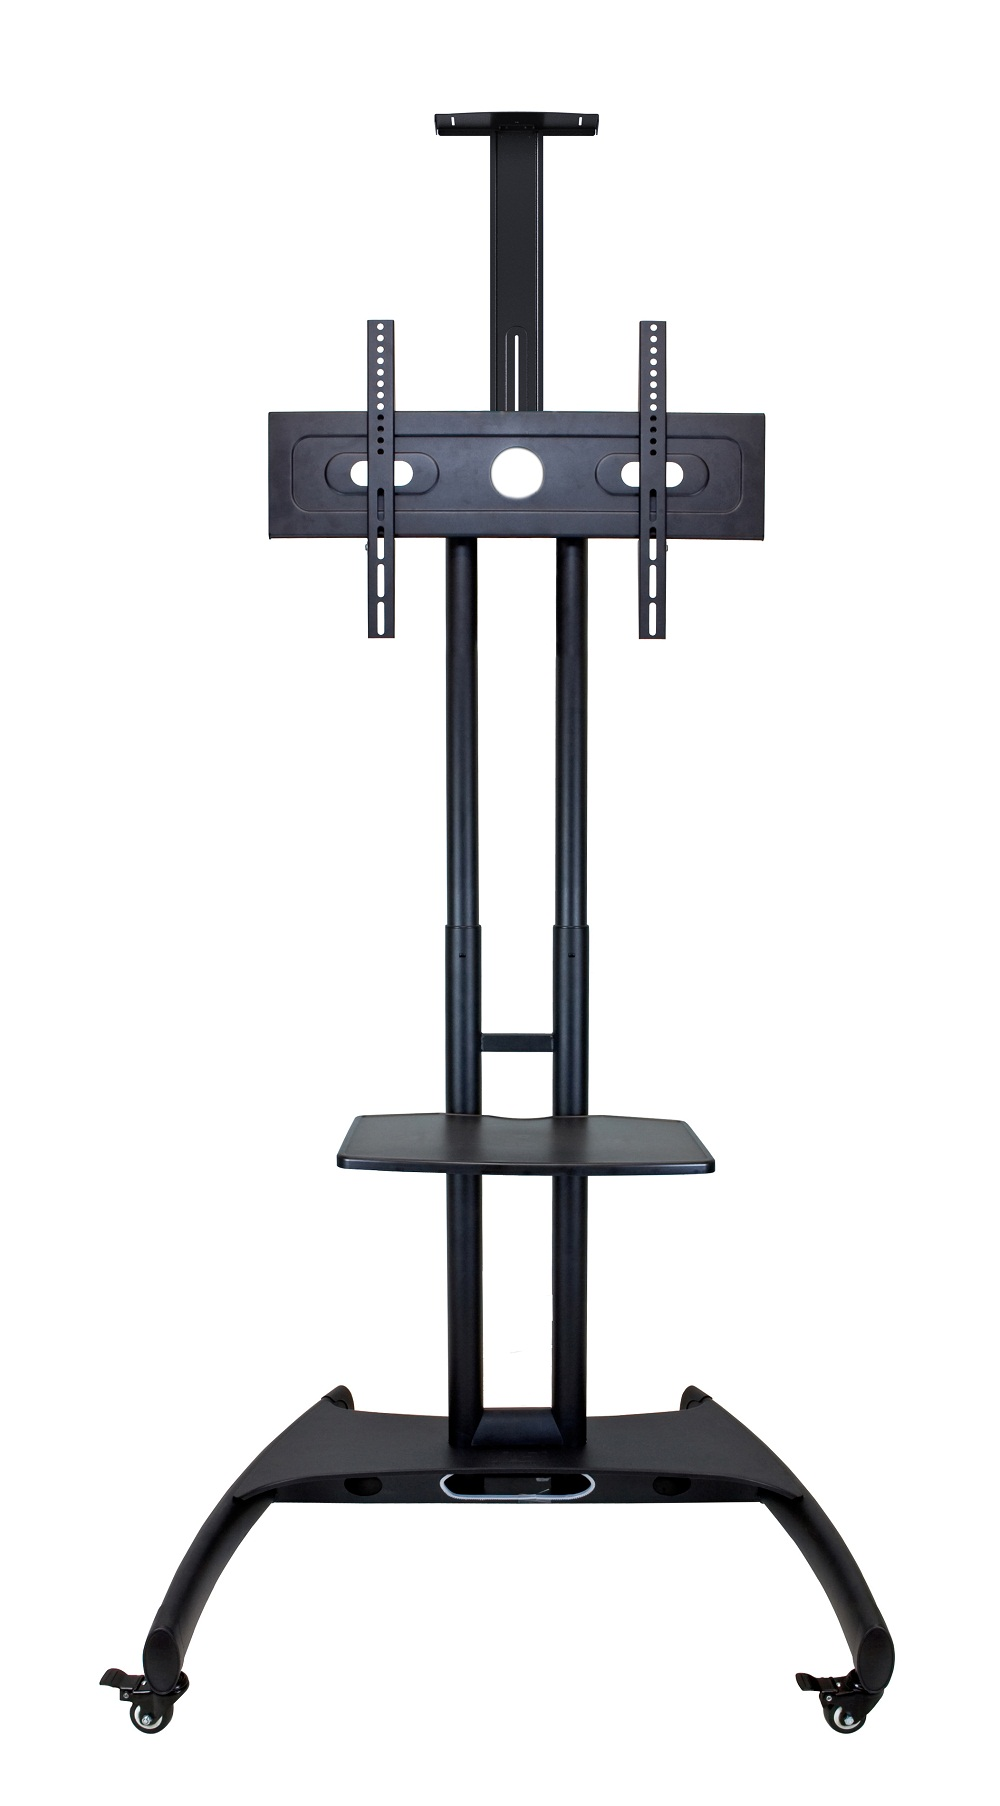 H Wilson Height Adjustable Moving Flat 32 - 60 Inch LCD TV Stand Cart Gray at Sears.com